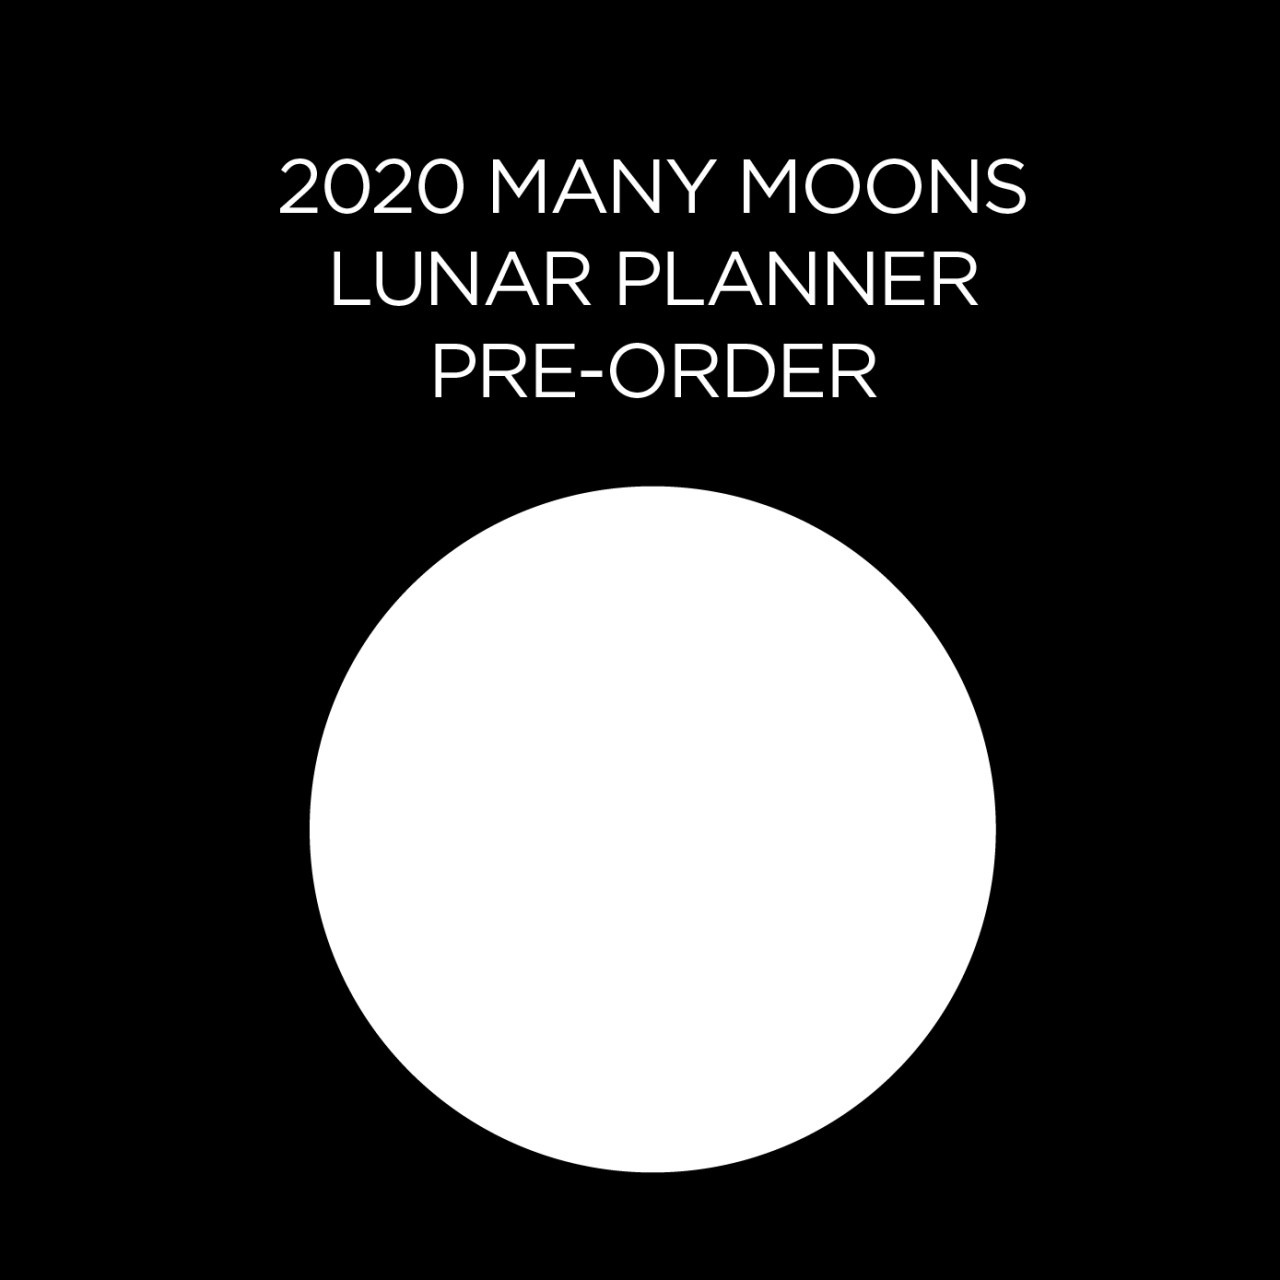 2020 Many Moons Lunar Planner by Modern Women   PRE ORDER FALL 2019   Sarah Faith Gottesdiener   Visual Magic   Many Moons